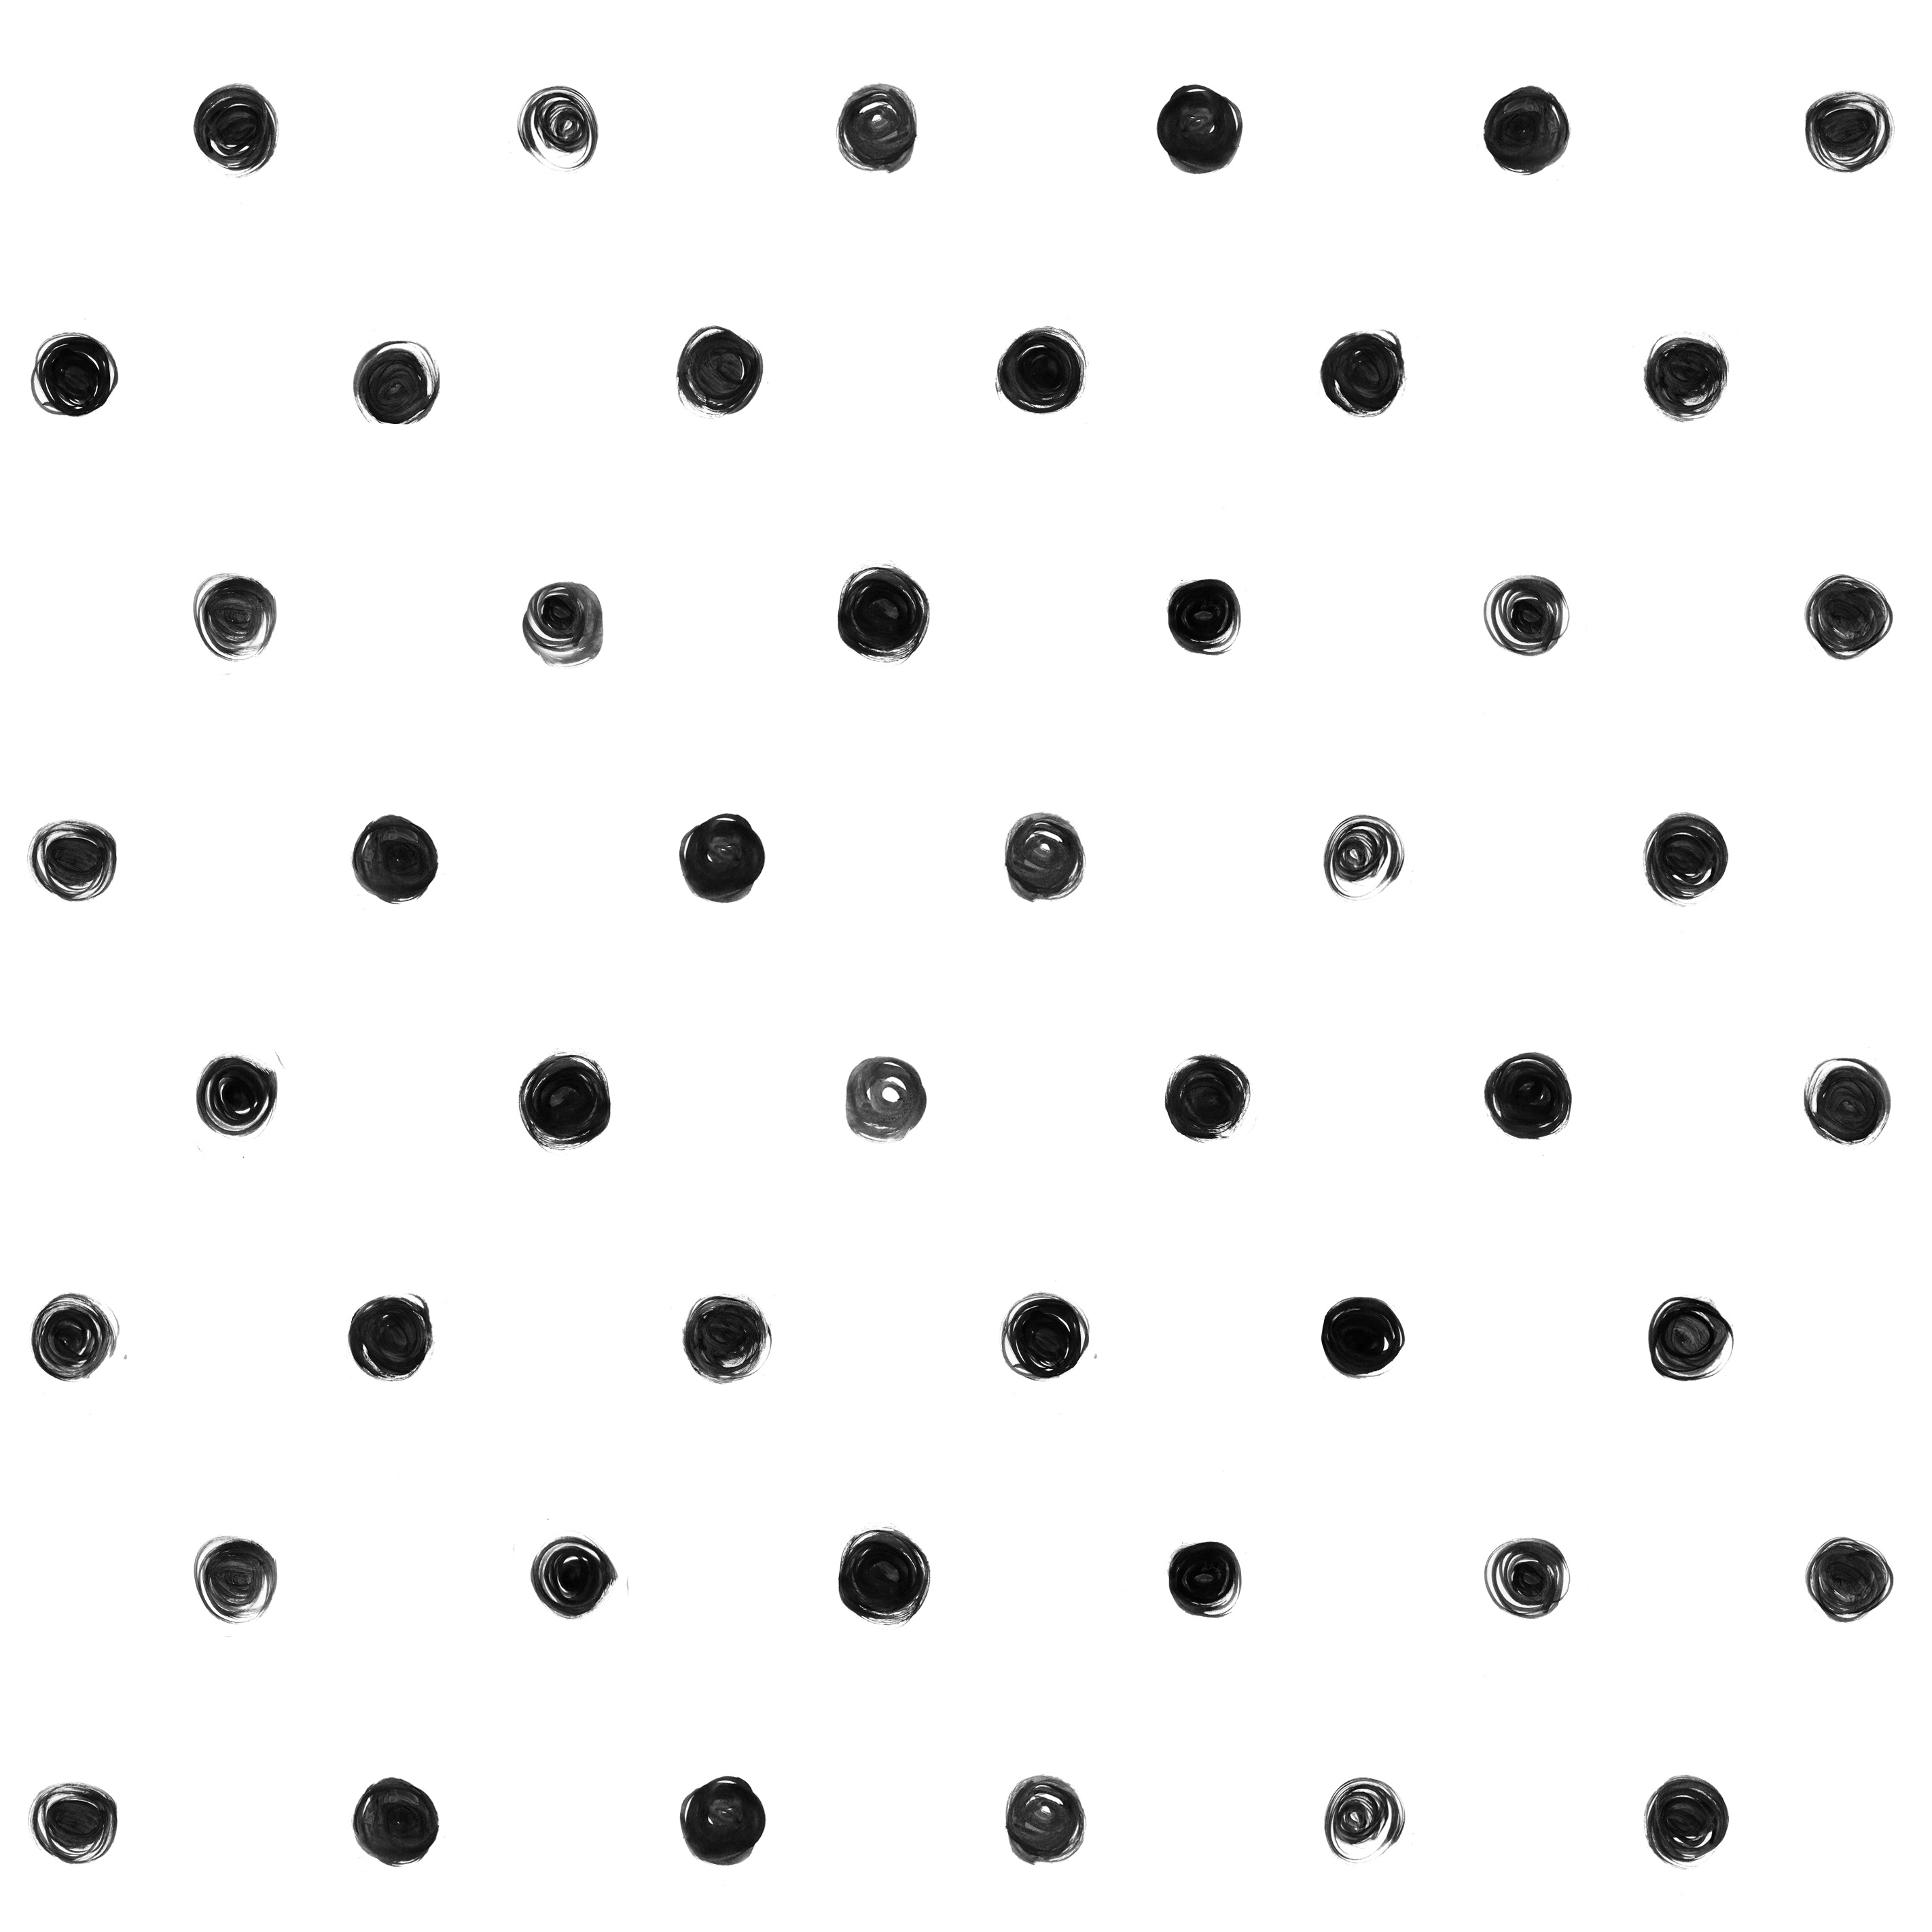 Black and white polka dot pattern - photo#3